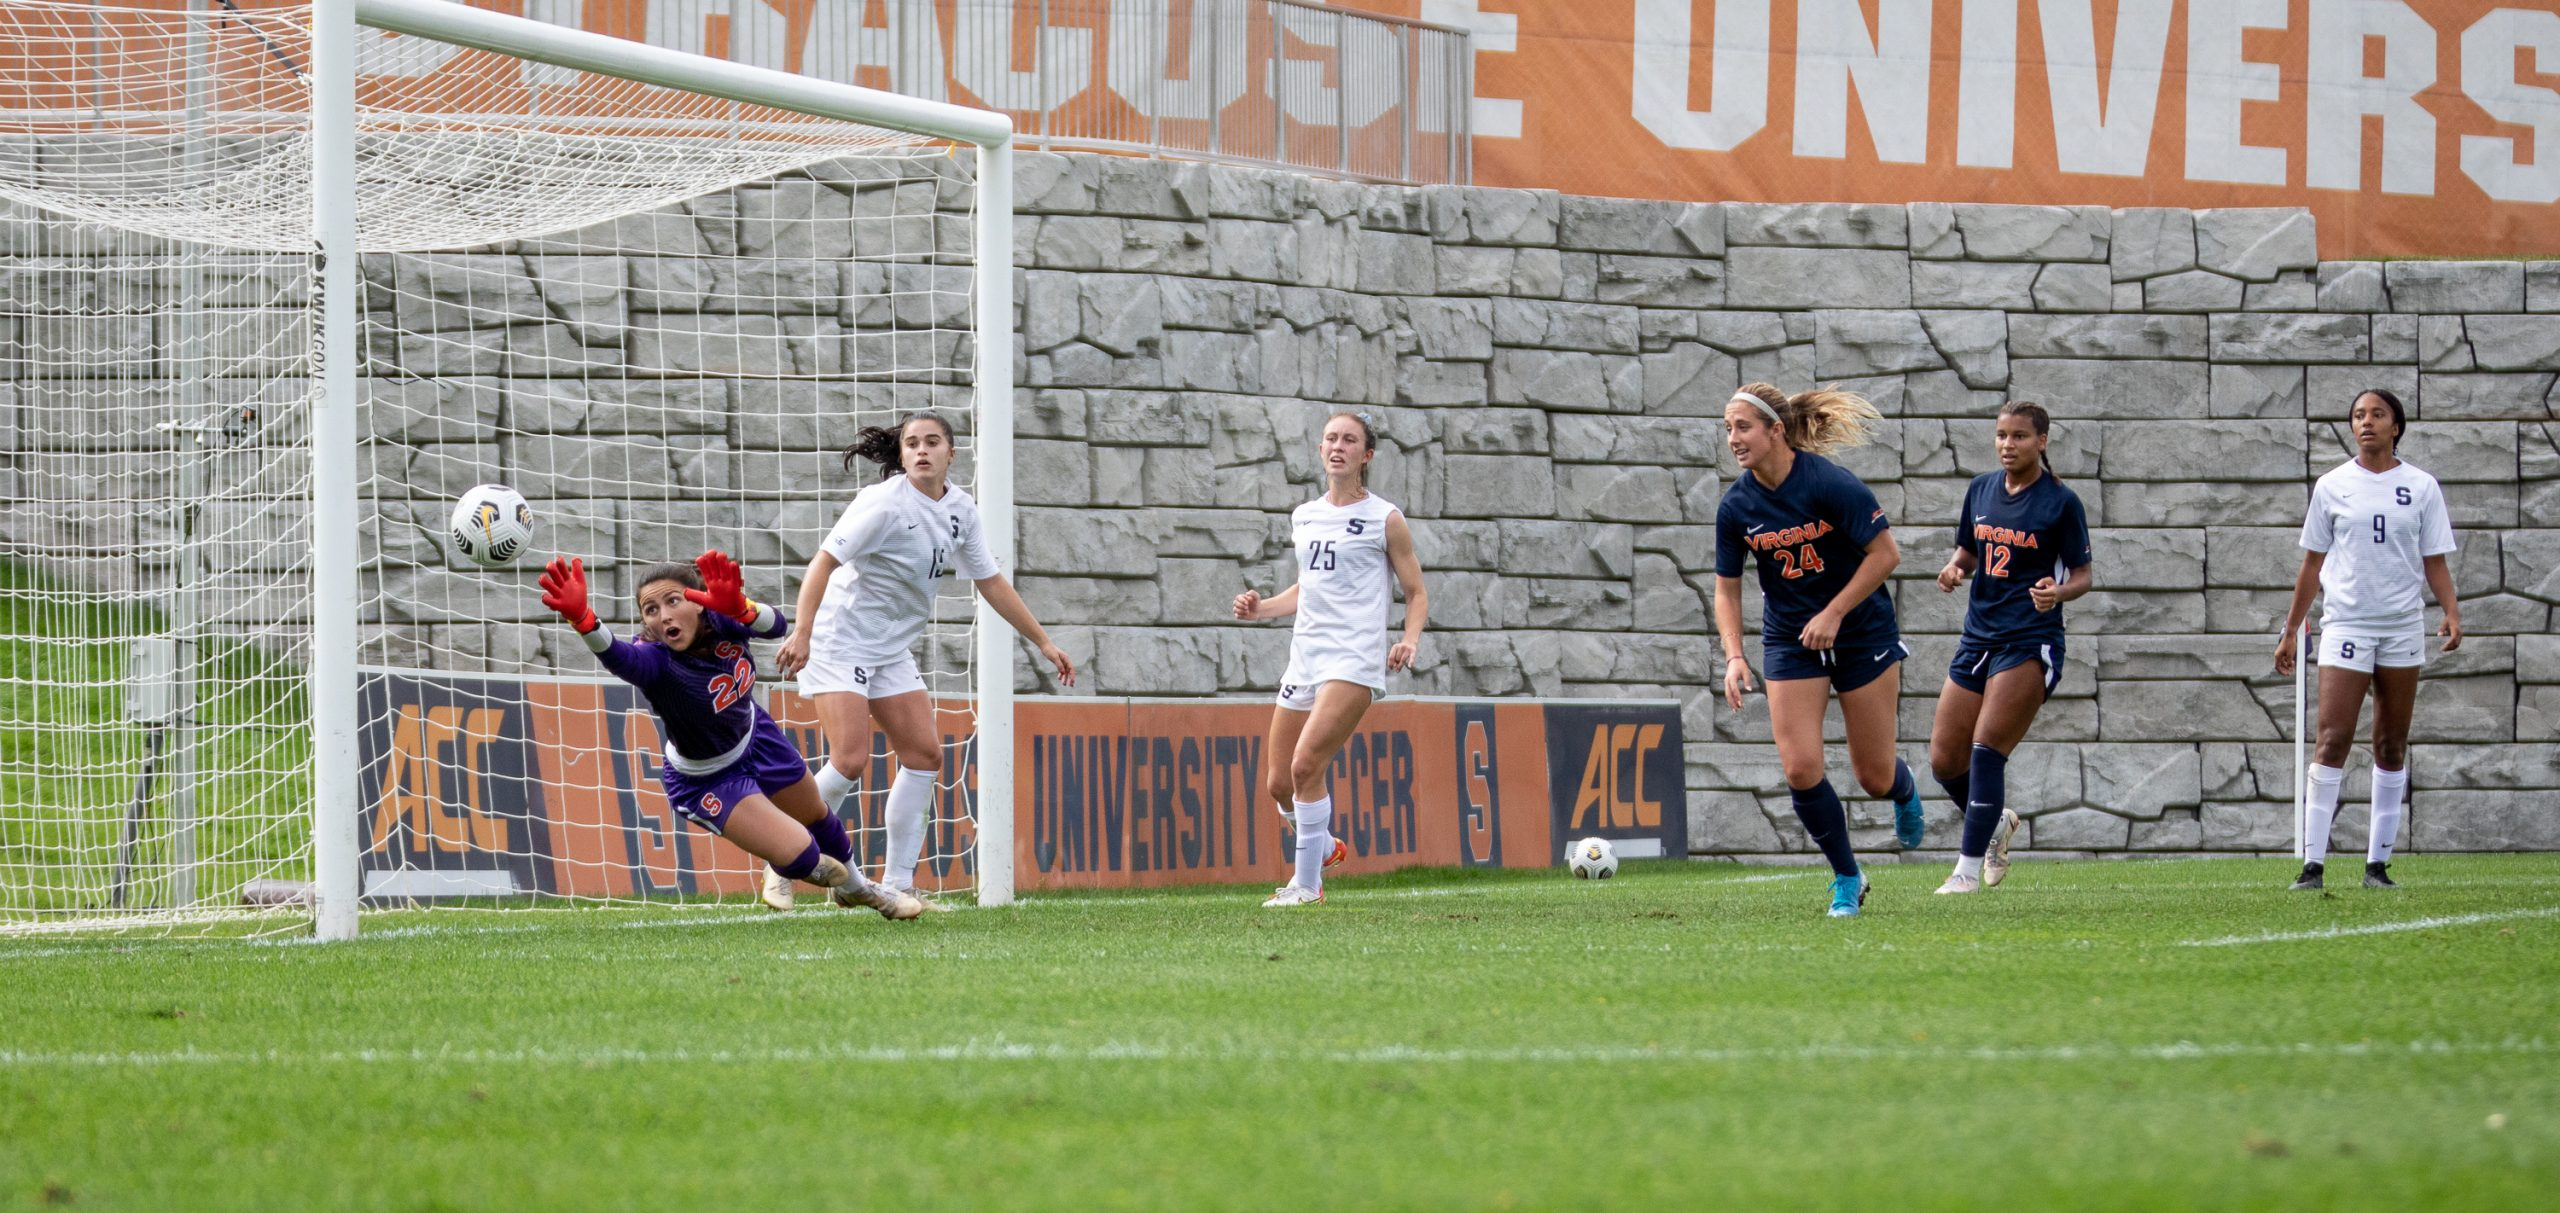 The ball flies past Syracuse's net-minder, Lysianne Proulx, for one of Virginia's five goals in the emphatic win over Syracuse on Sunday, October 10th, 2021.